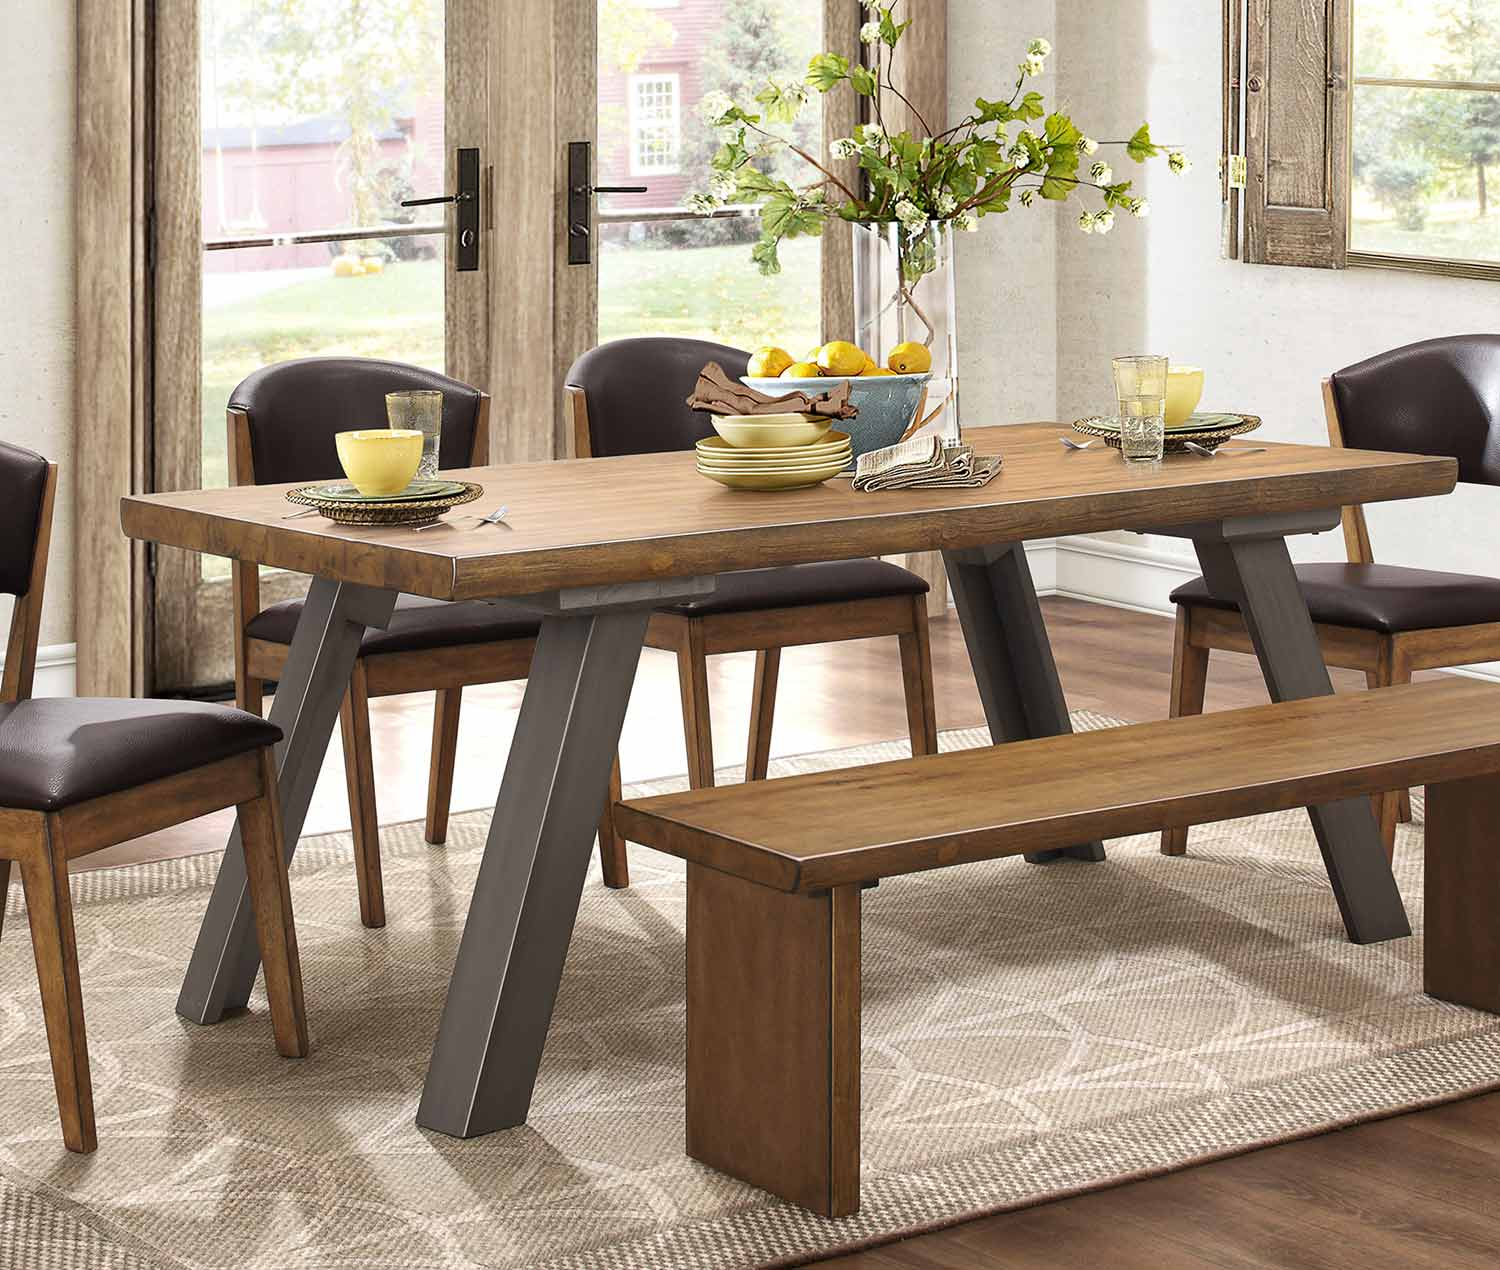 Homelegance Hobson Rectangular Dining Table